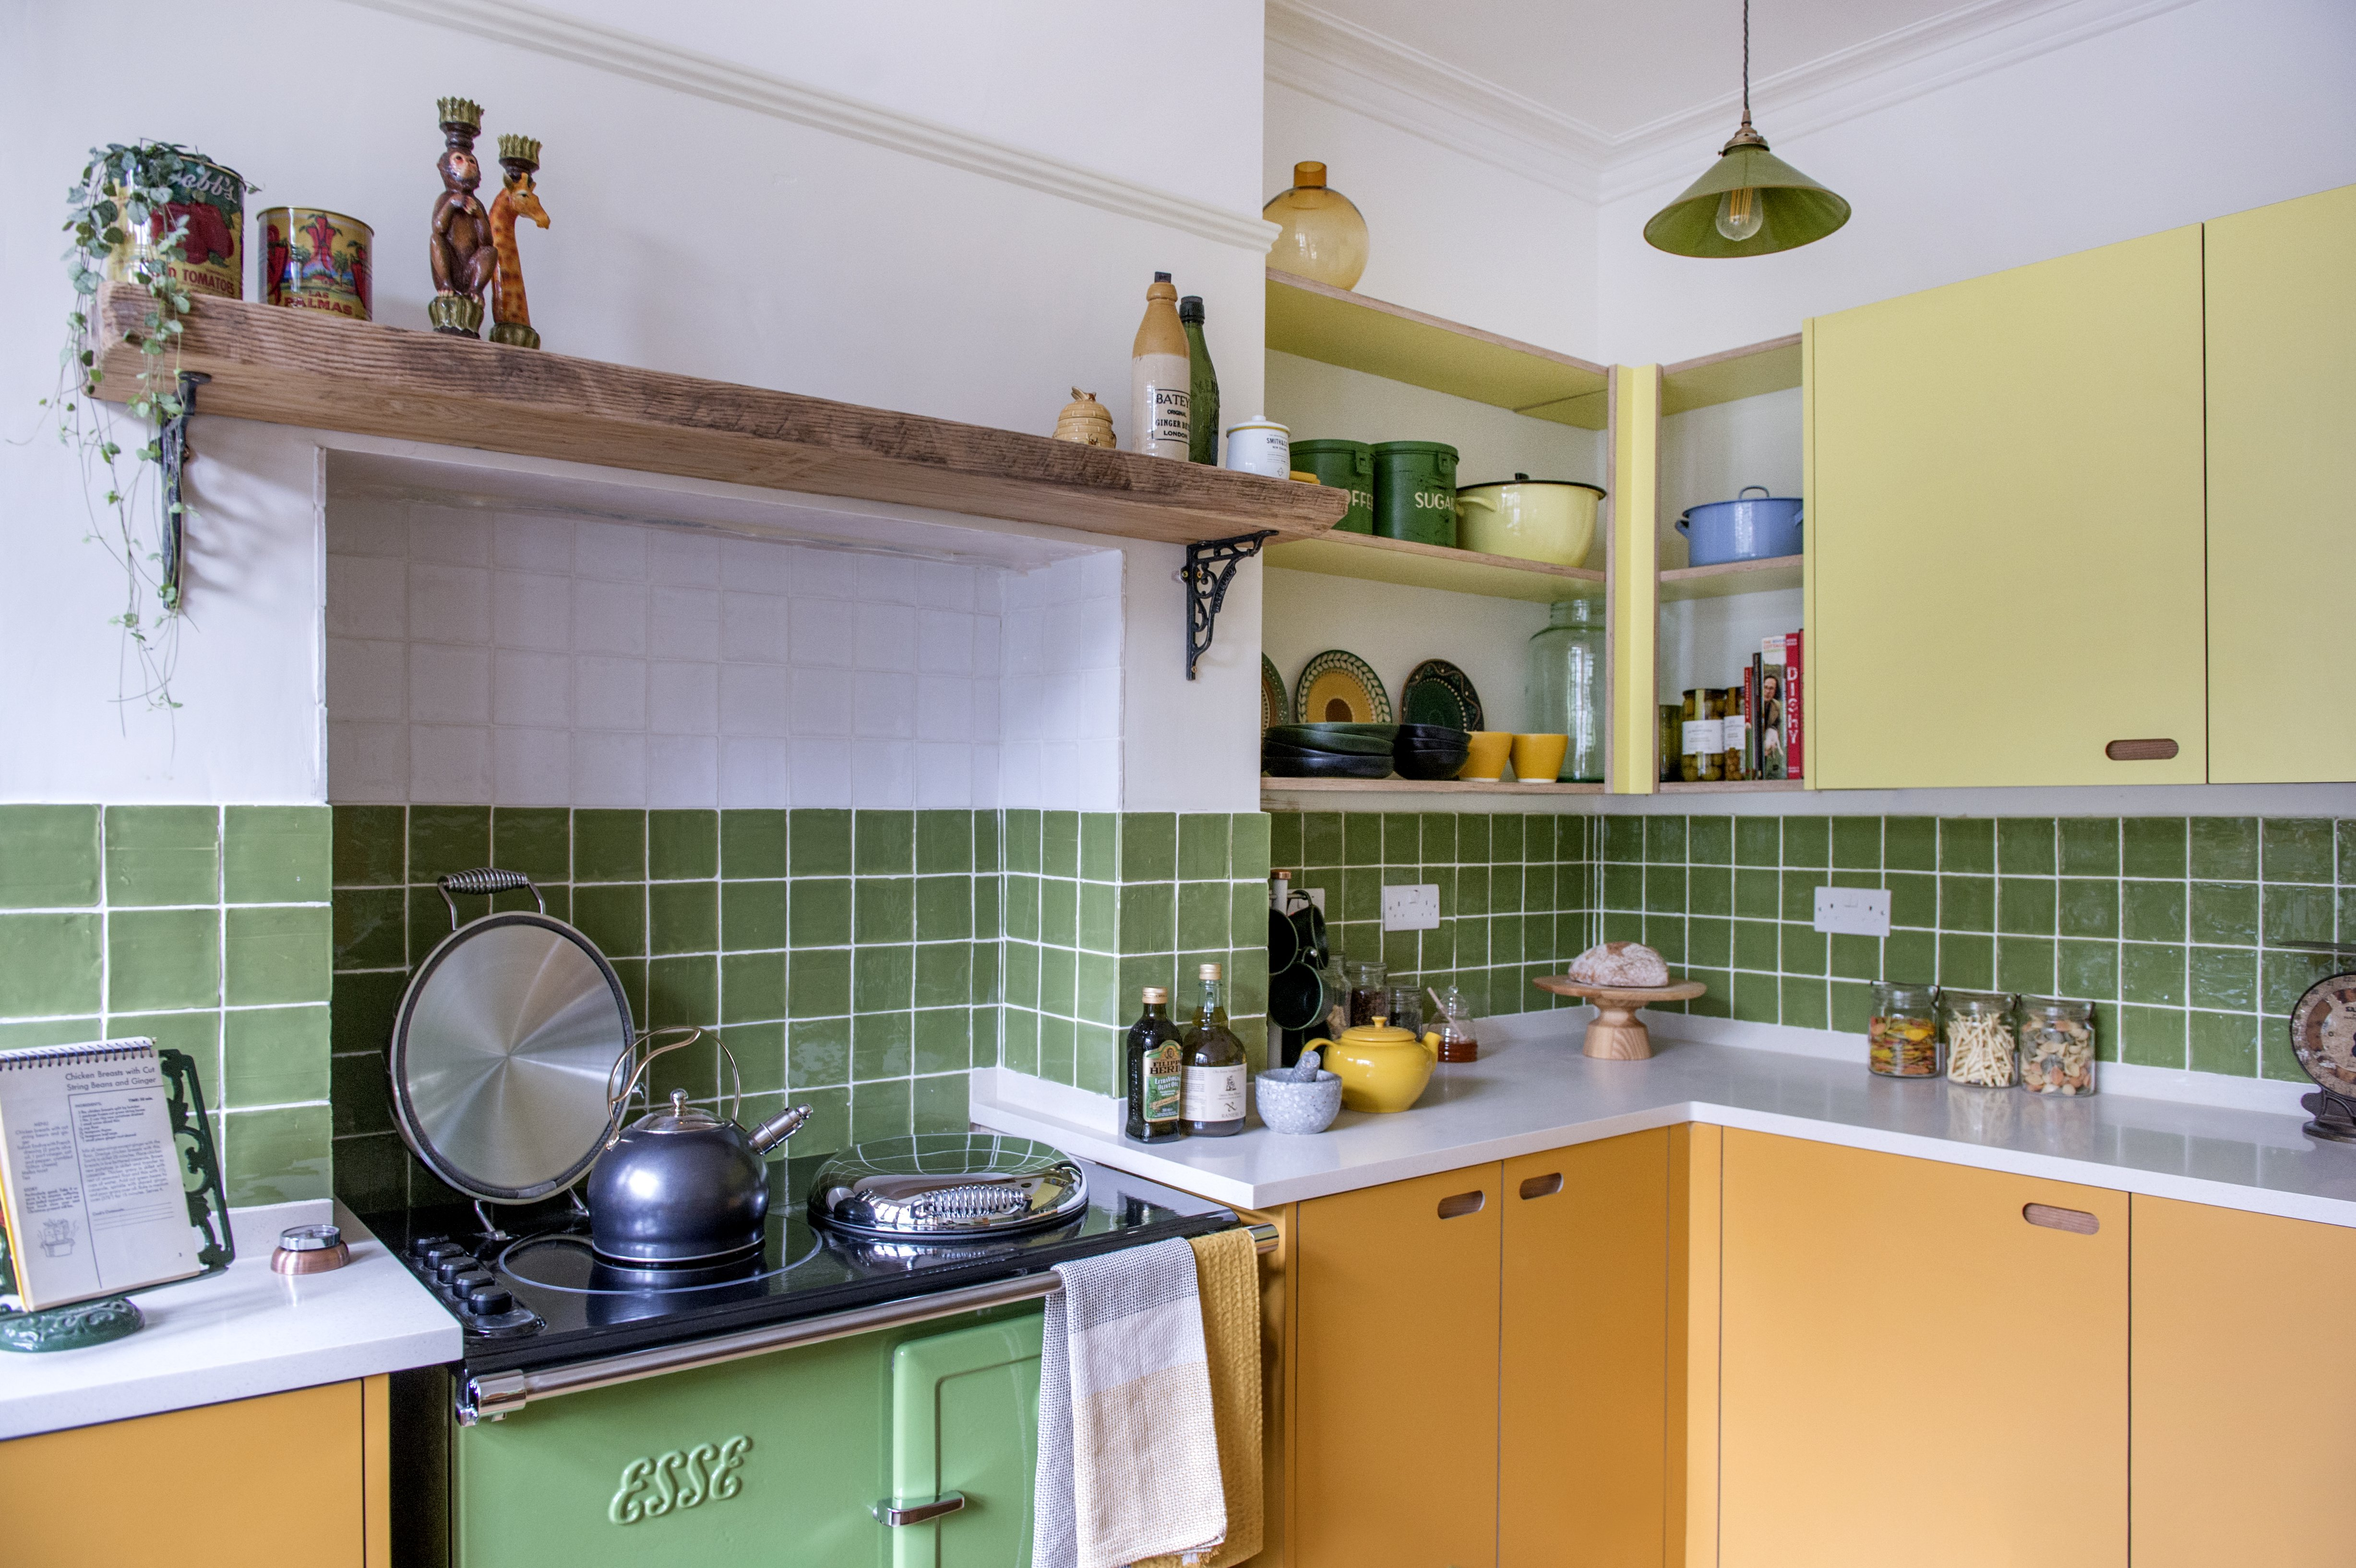 CRFA_CRF1A_Kitchen_100x100_country_white_rustic_apple_green_gloss_old_house_new_home_george_clarke_minton_hollins.jpg